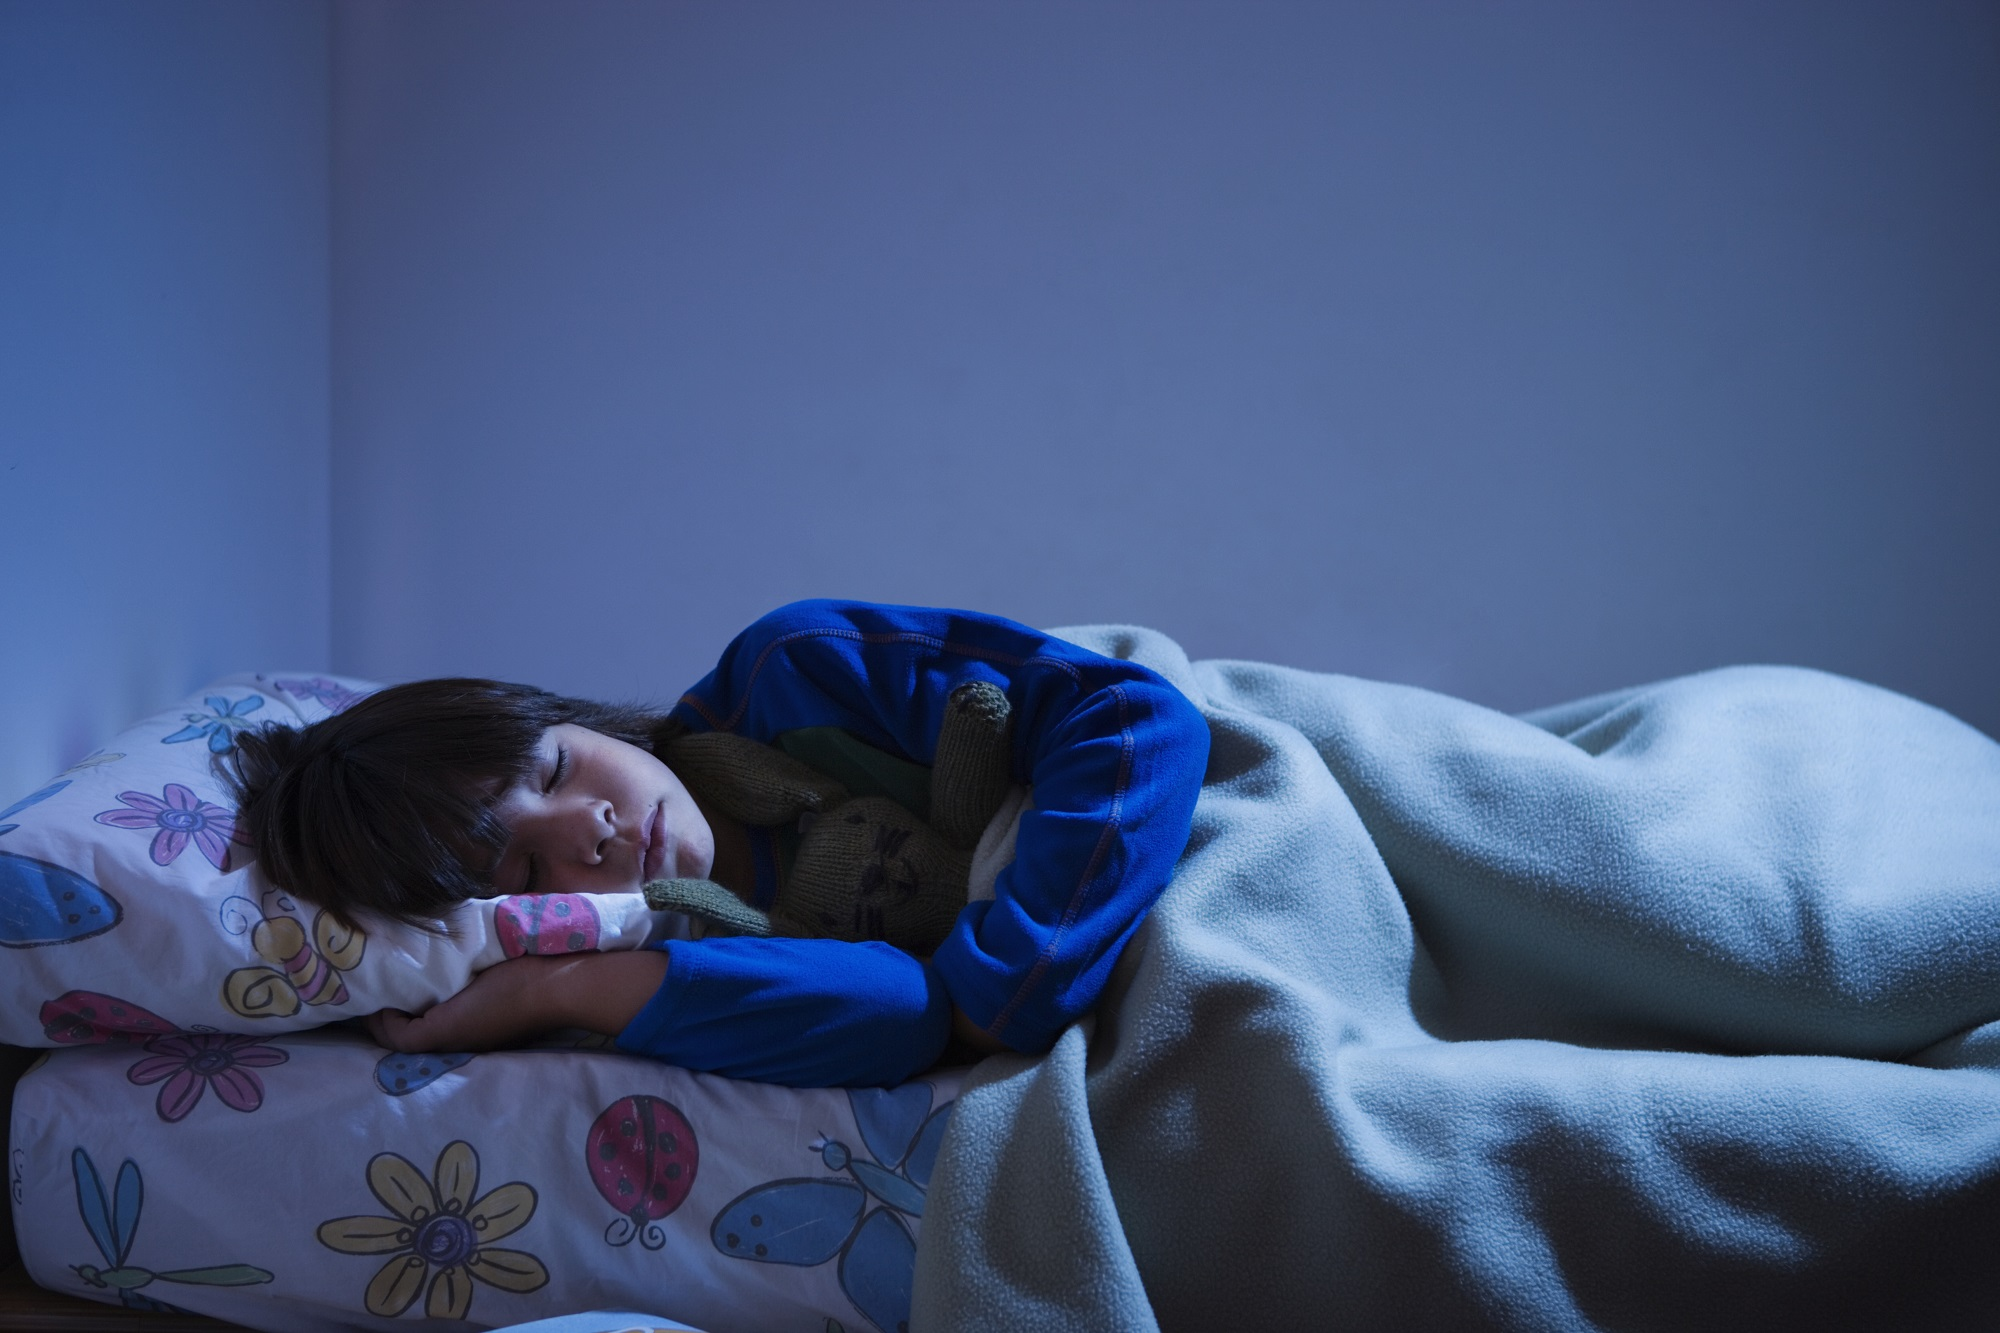 How Does Poor Sleep Affect Children With Autism or ADHD? - Neurology Advisor